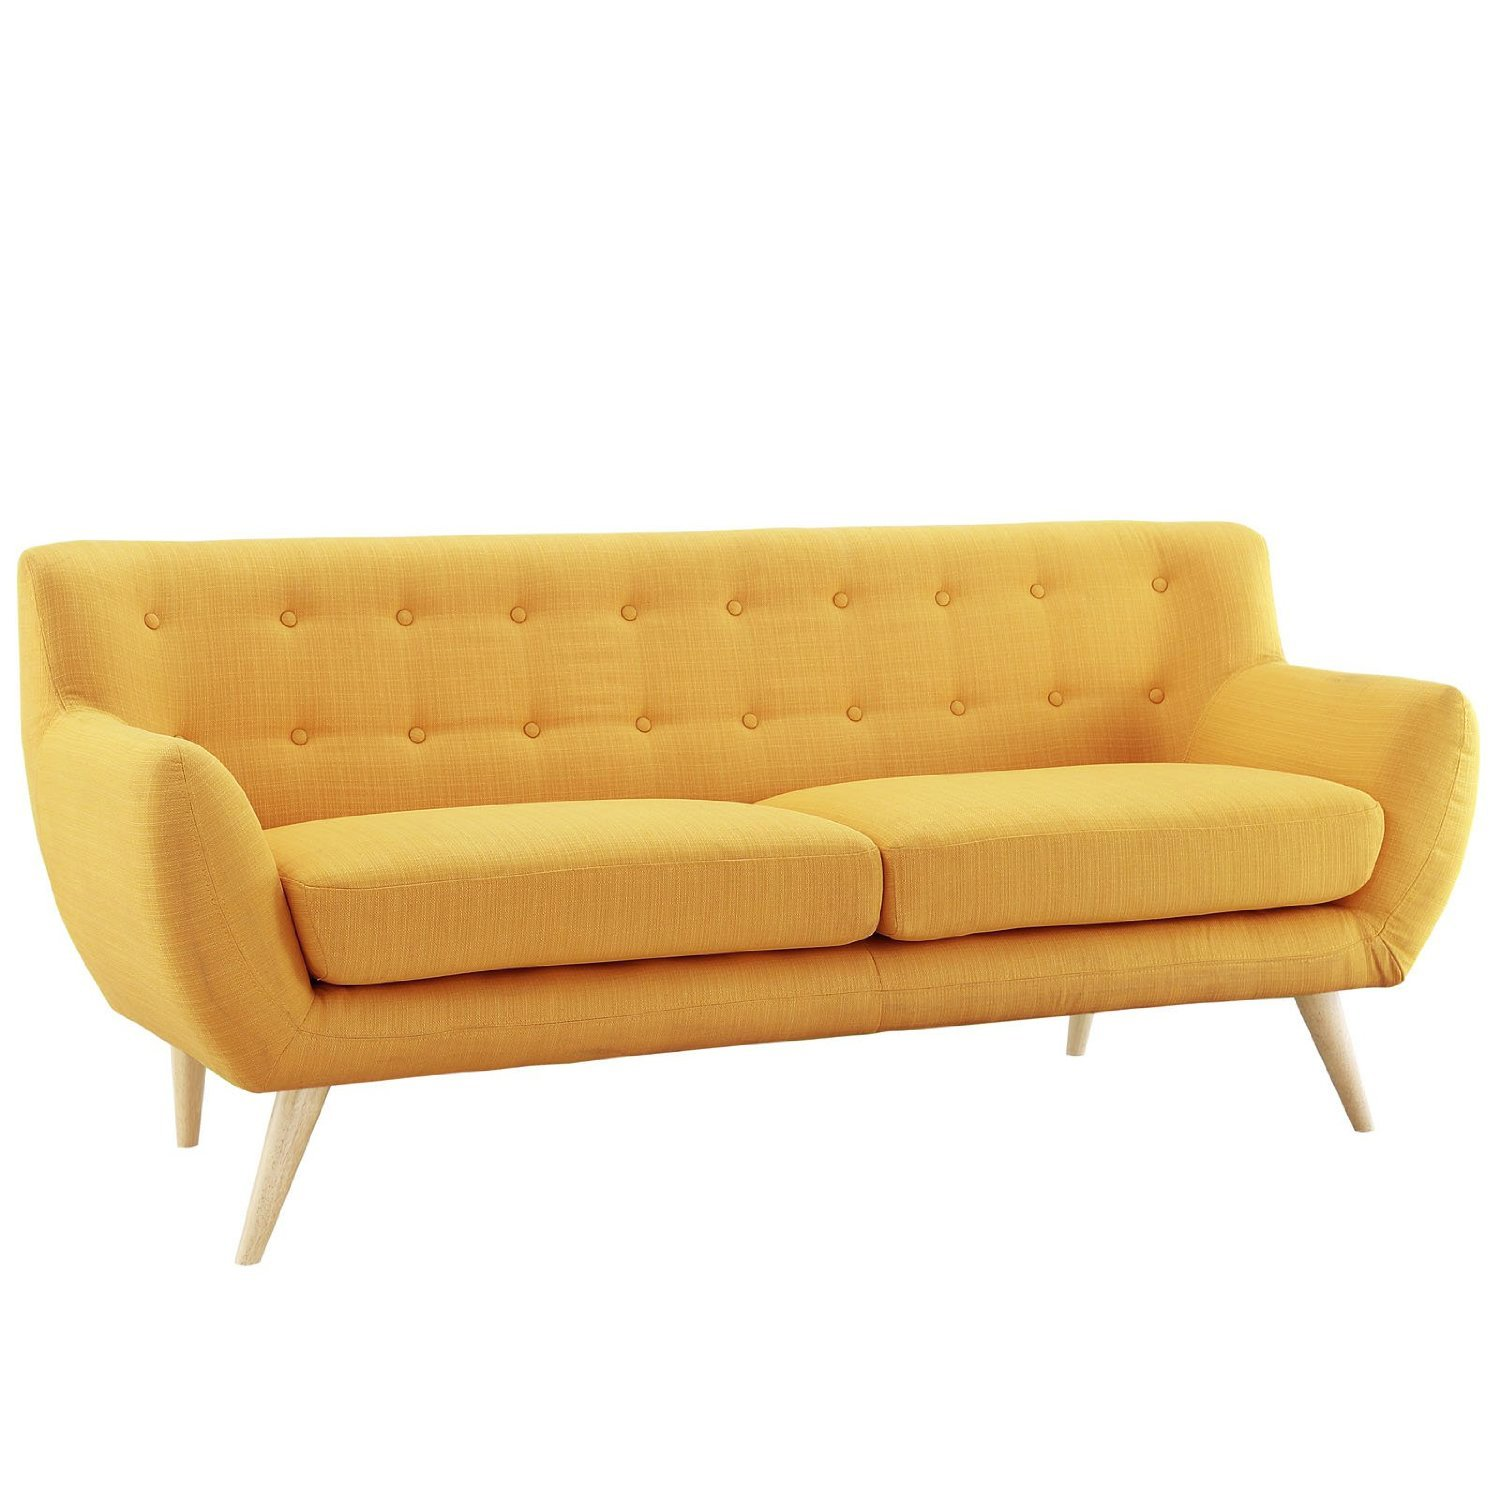 Mid Century Modern Style Sofa /Love Seat Red - Grey - Yellow - Blue - 2 Seat - 3 Seat (Yellow - 2 Seater)